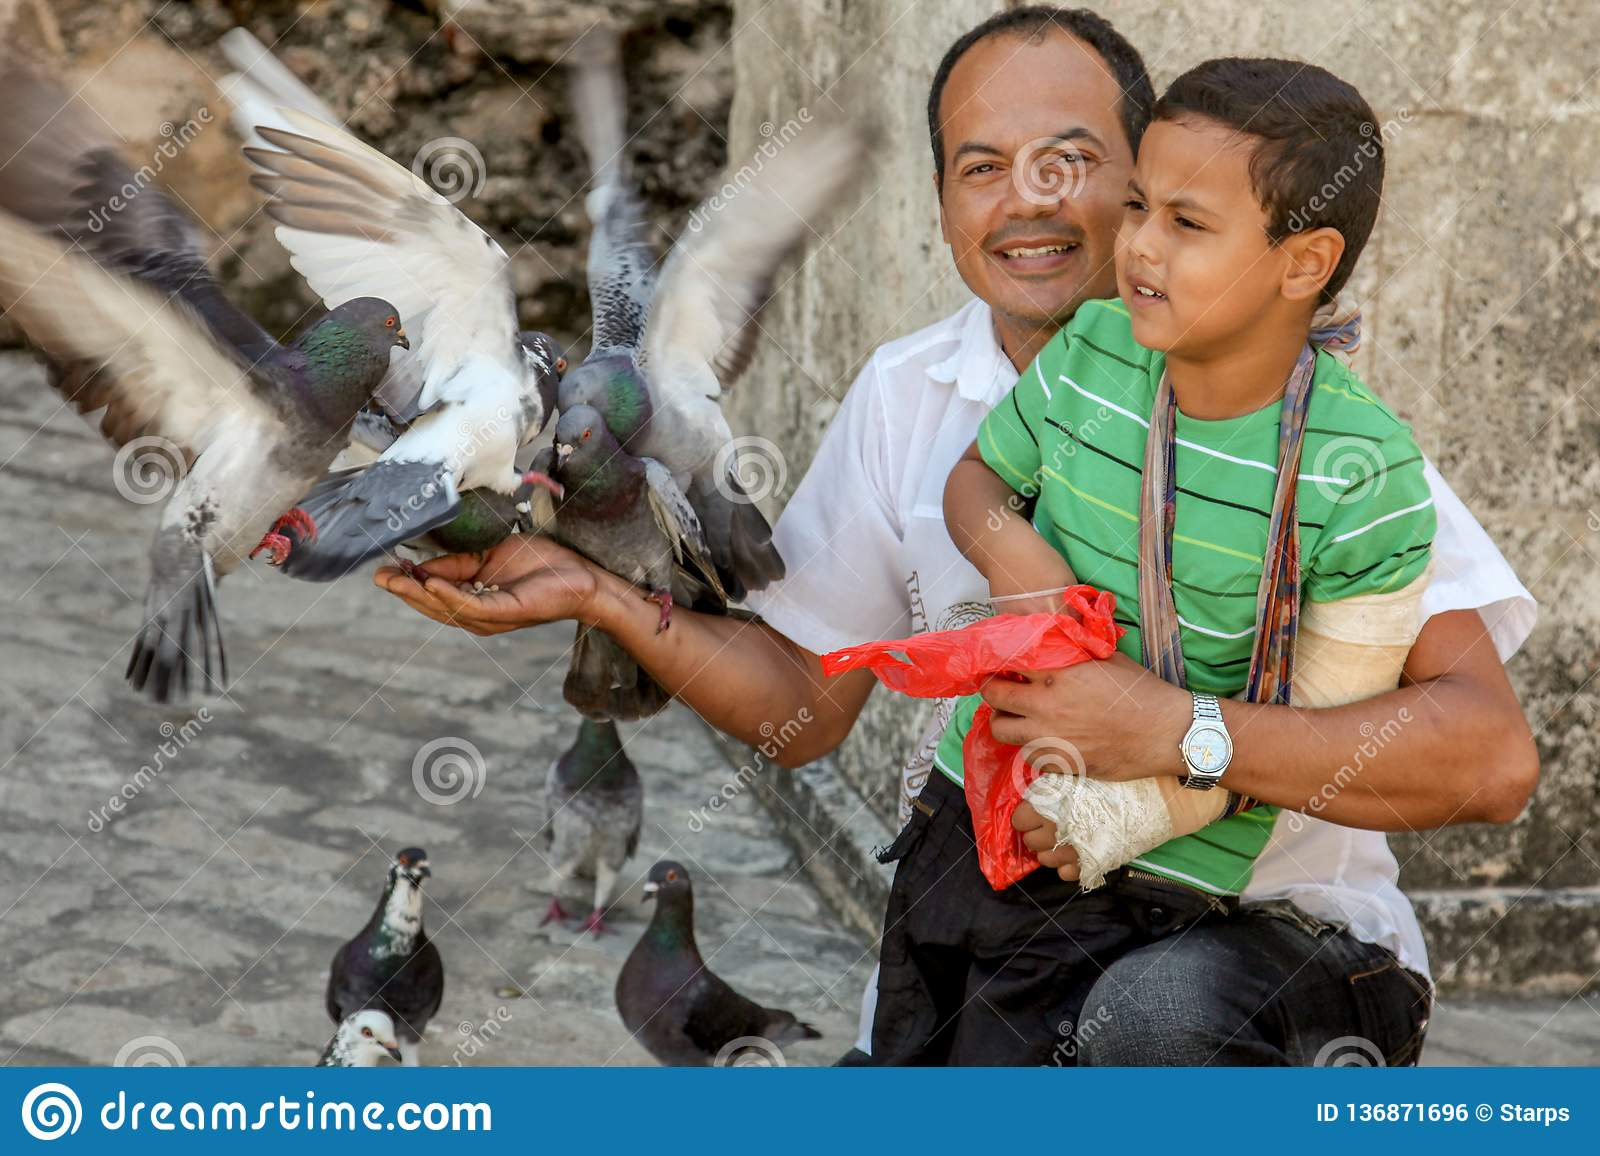 Barcelona / Spain - Oct./2018: Adult latin man with a boy on knees feeds the pigeons on the city street. Happy life, family values